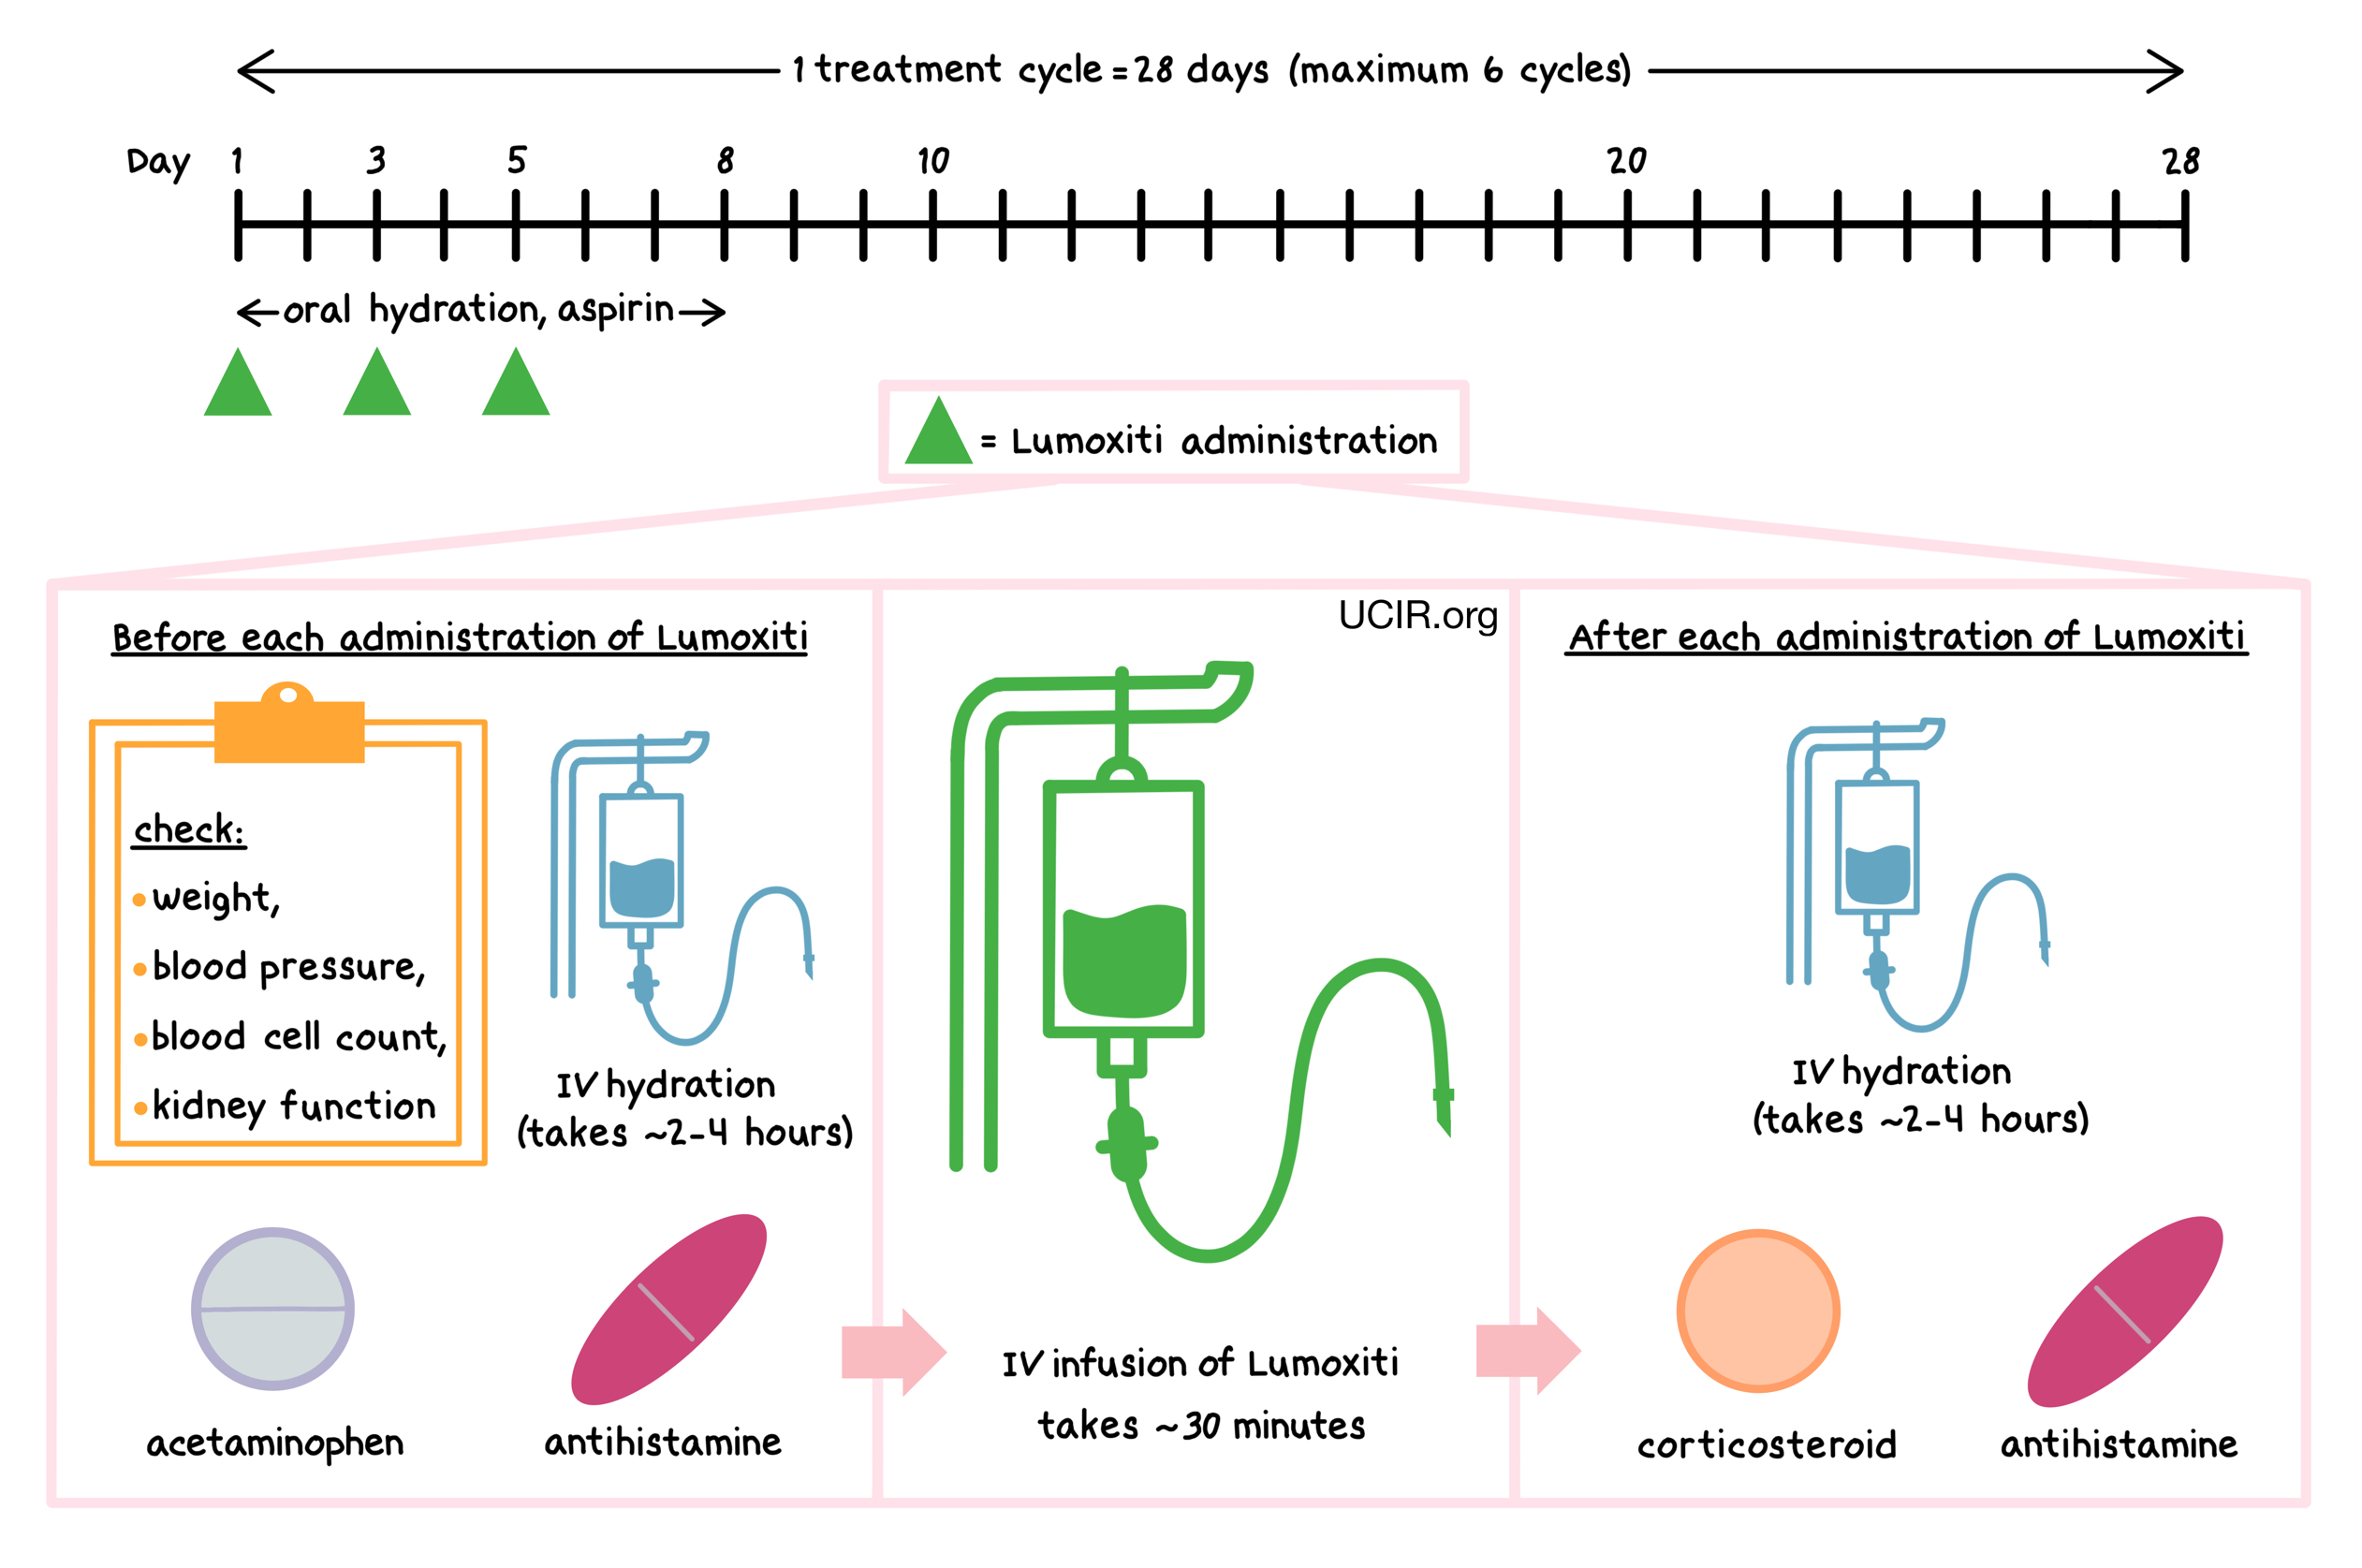 Illustration that shows how Lumoxiti is administered to patients